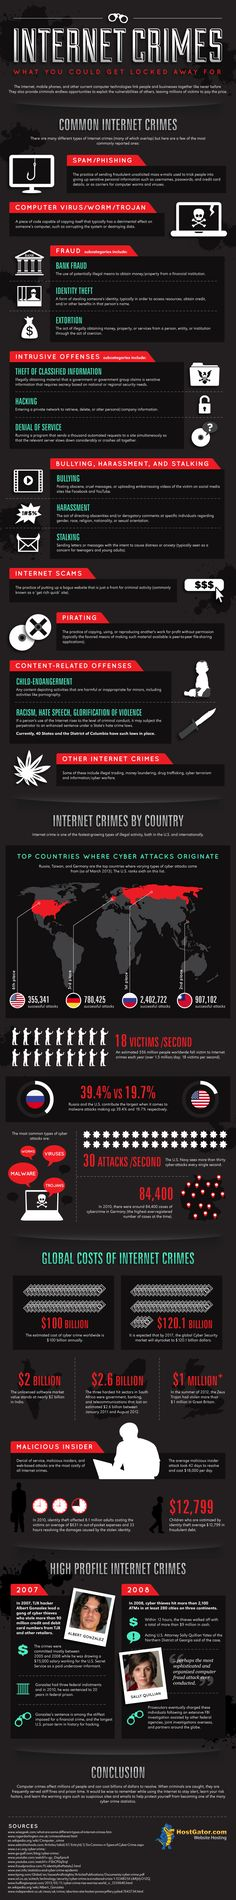 Cyber Crime Around the World : Learn about the basic types of internet crimes and relevant activities. Get an overall picture of cyber crime around the world and the costs involved. > http://infographicsmania.com/cyber-crime-around-the-world/?utm_source=Pinterest&utm_medium=ZAKKAS&utm_campaign=SNAP